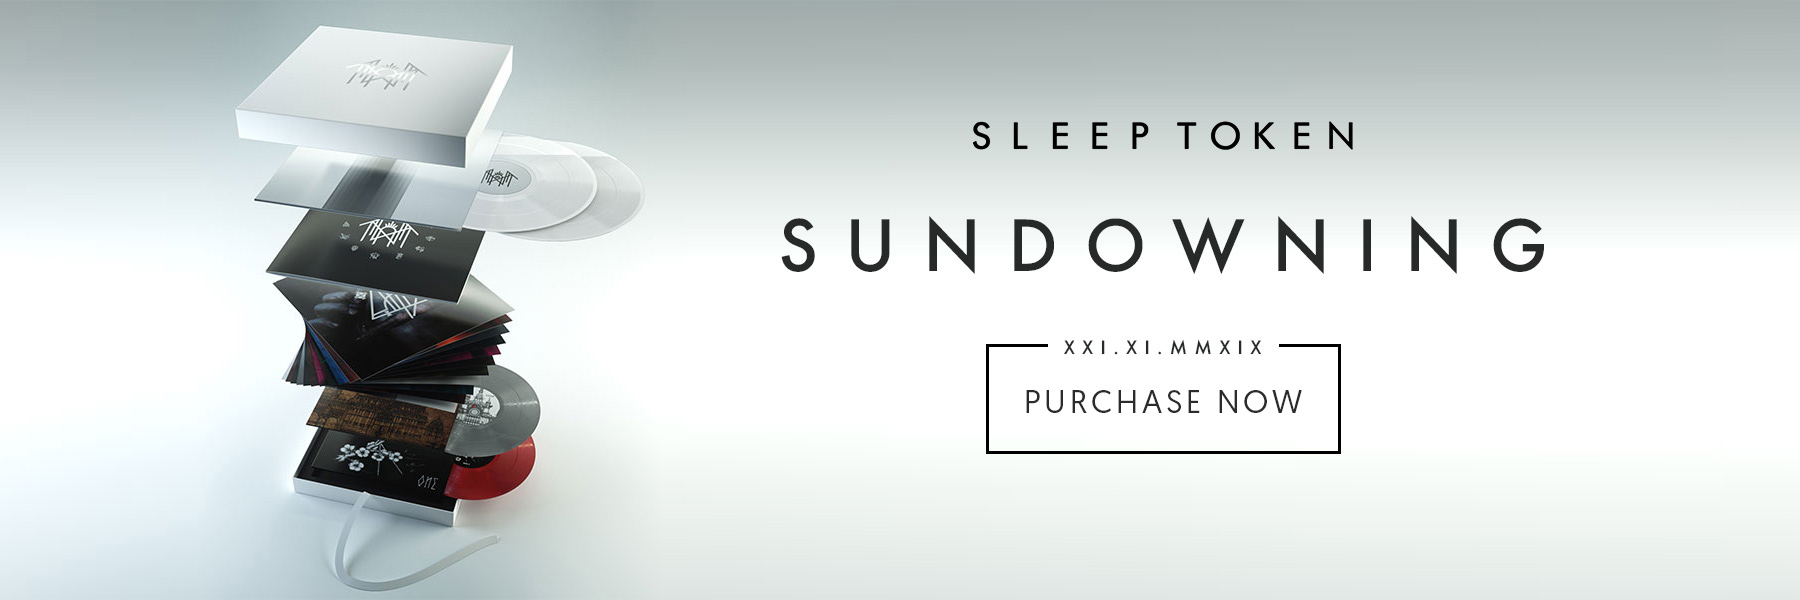 Pre Order Sleep Token Sundowning